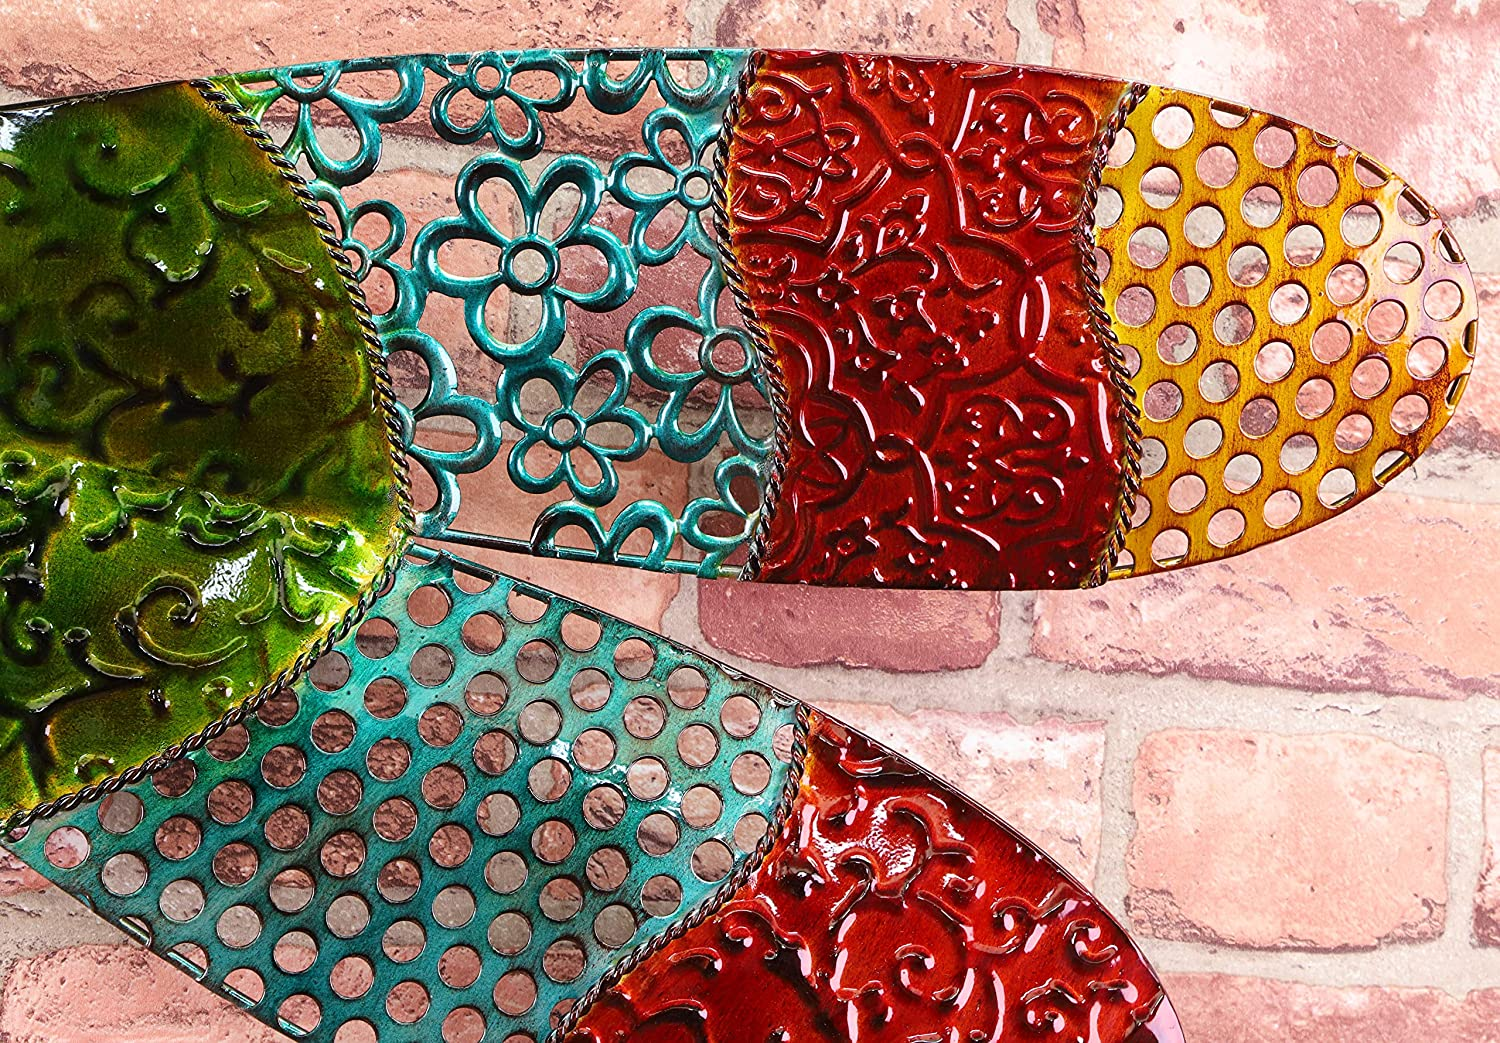 87 x 59 cm Colourful Dragonfly Wall Sculpture Outdoor Wall Art